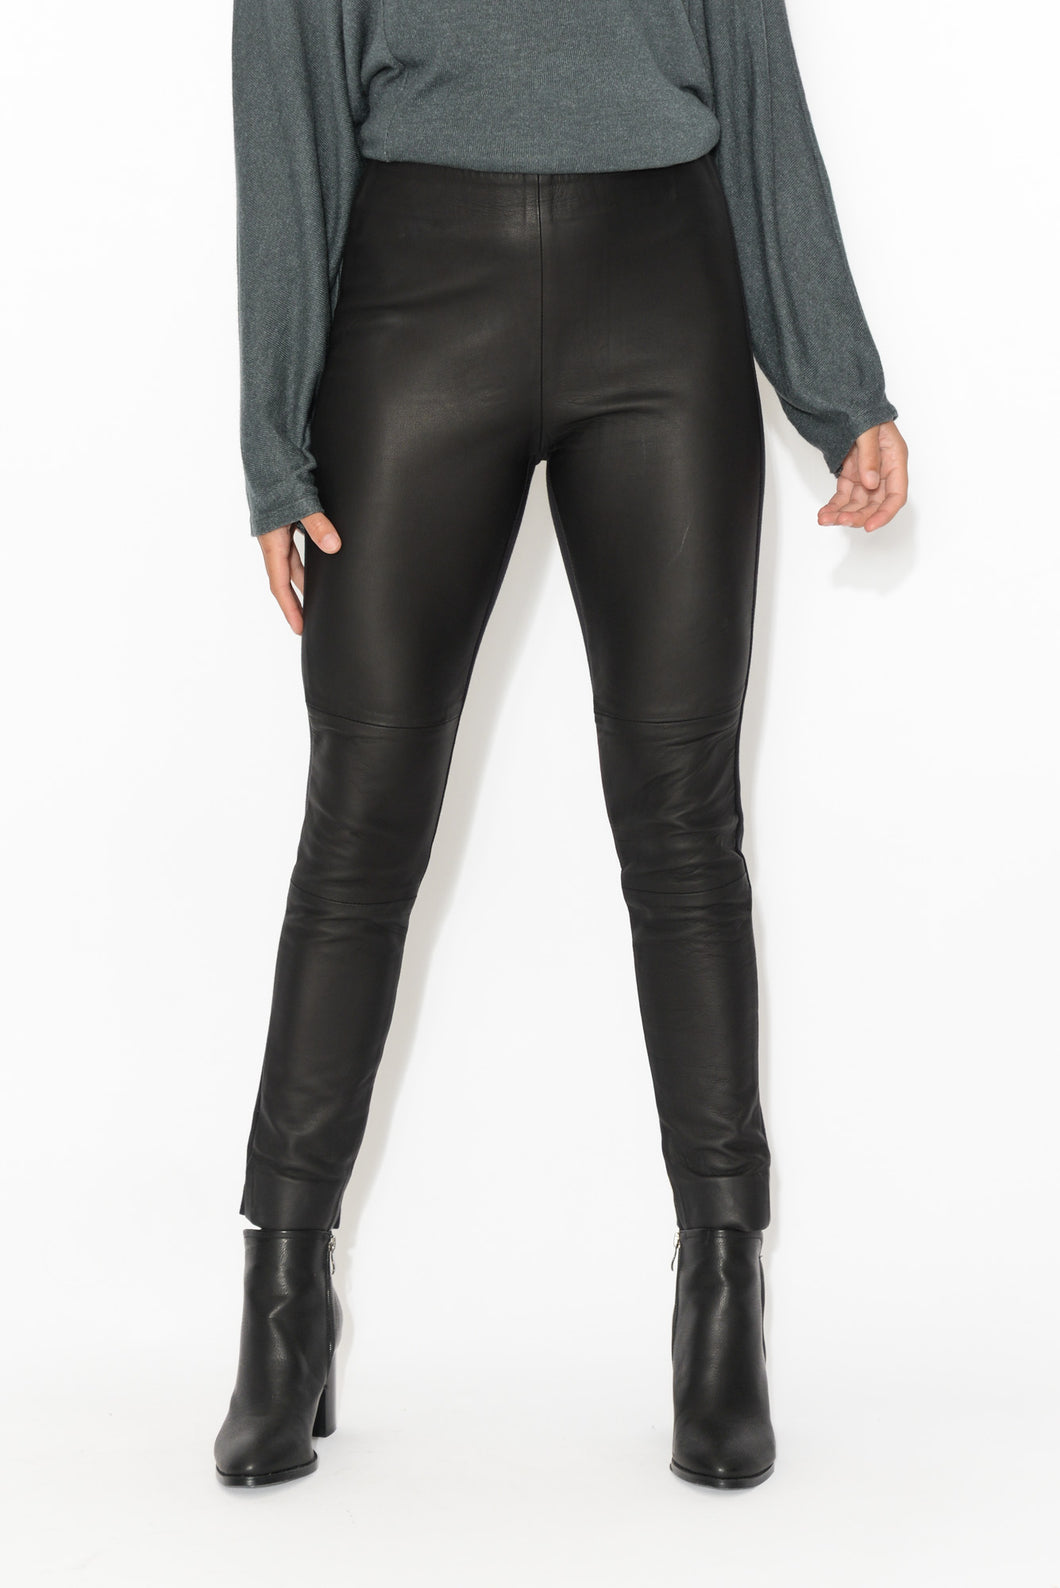 Jupiter Leather Legging